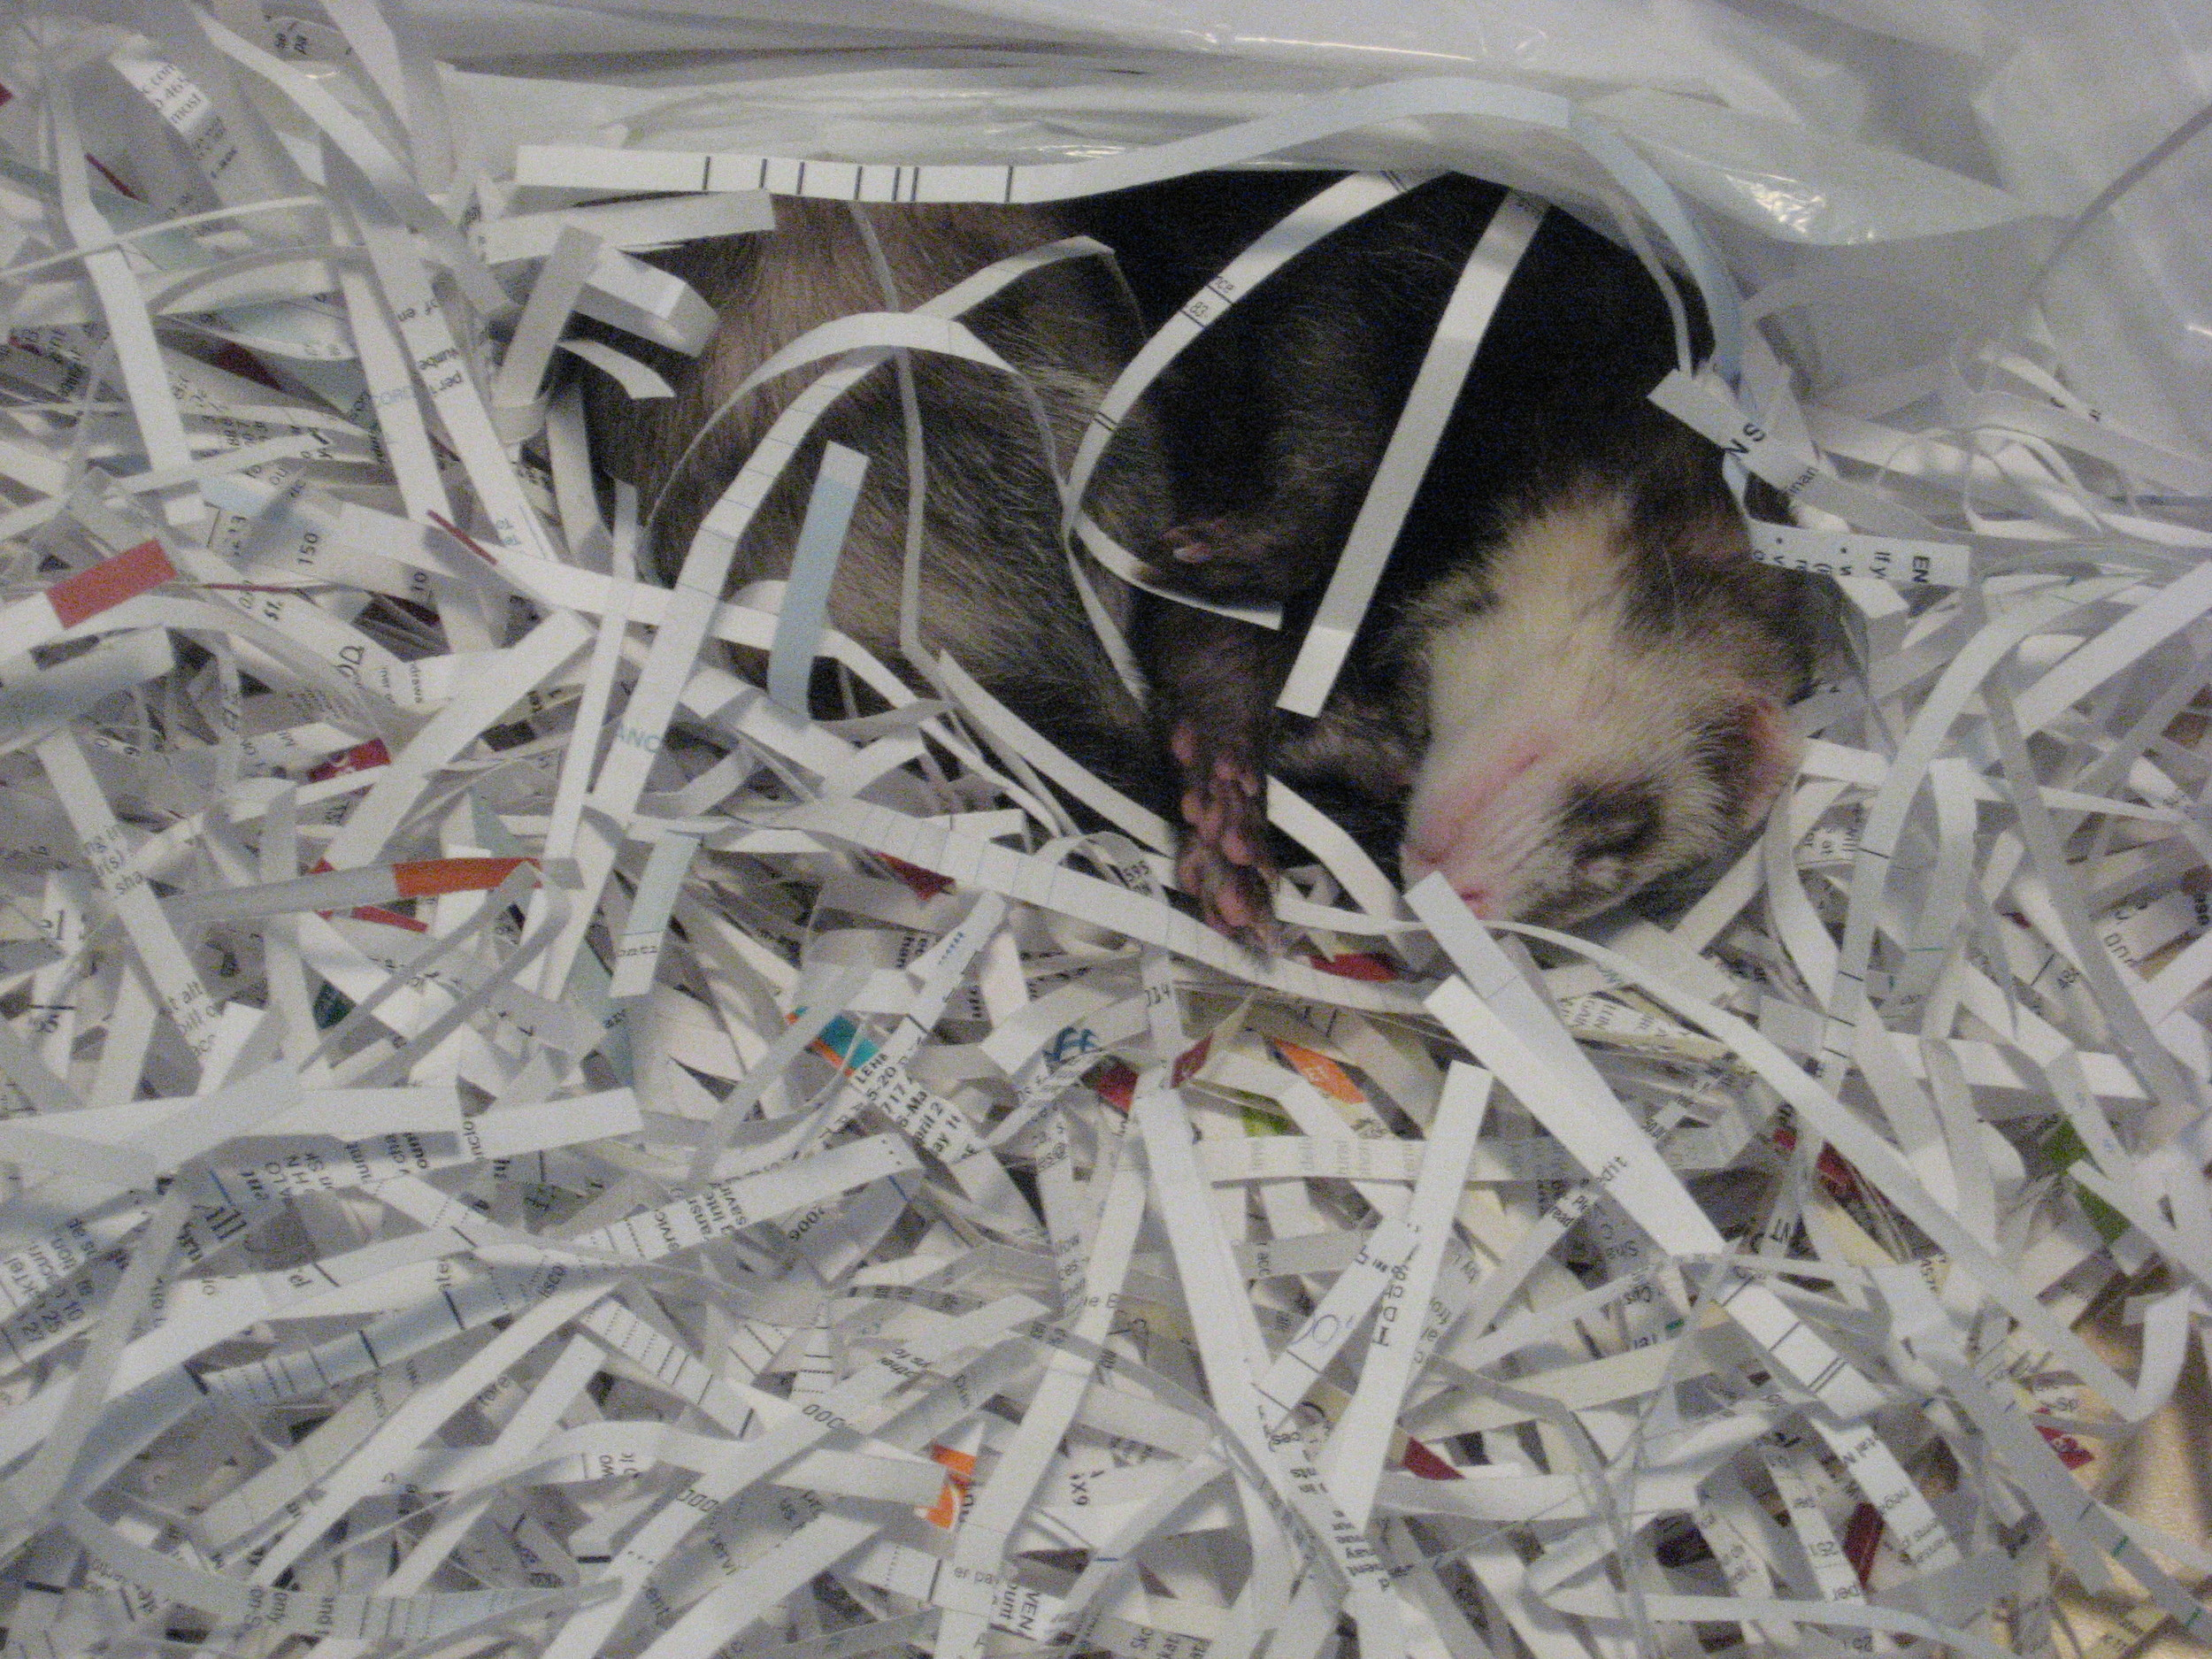 In a pile of shredded paper